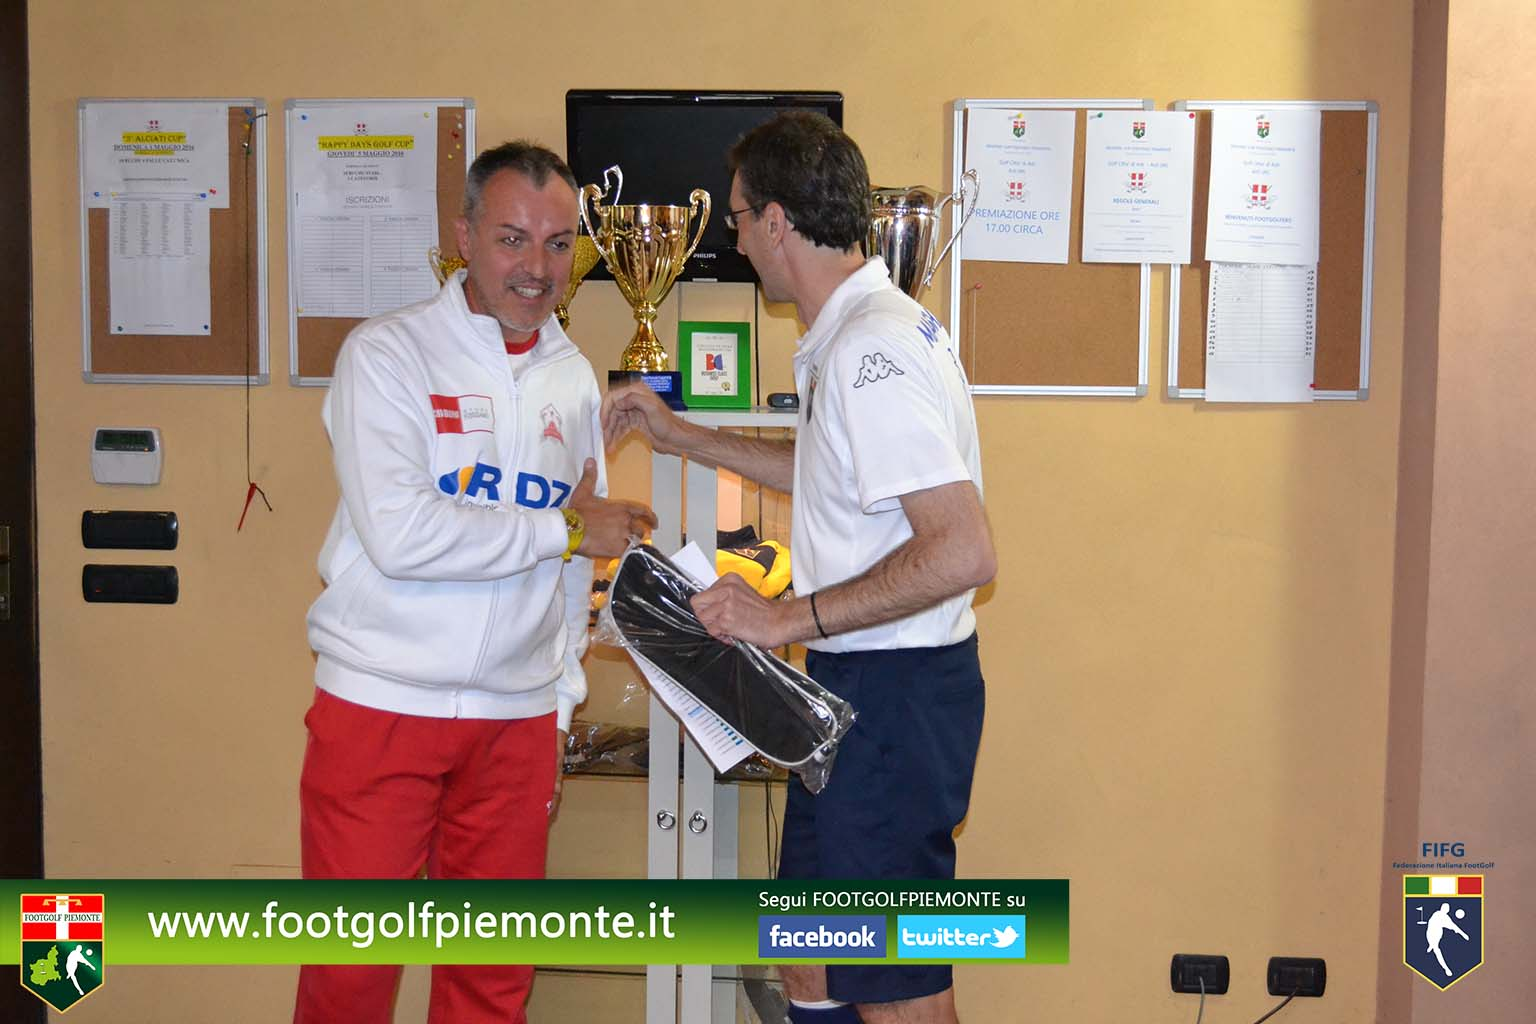 FOTO 9 Regions' Cup Footgolf Piemonte 2016 Golf Città di Asti (At) 30apr16-121